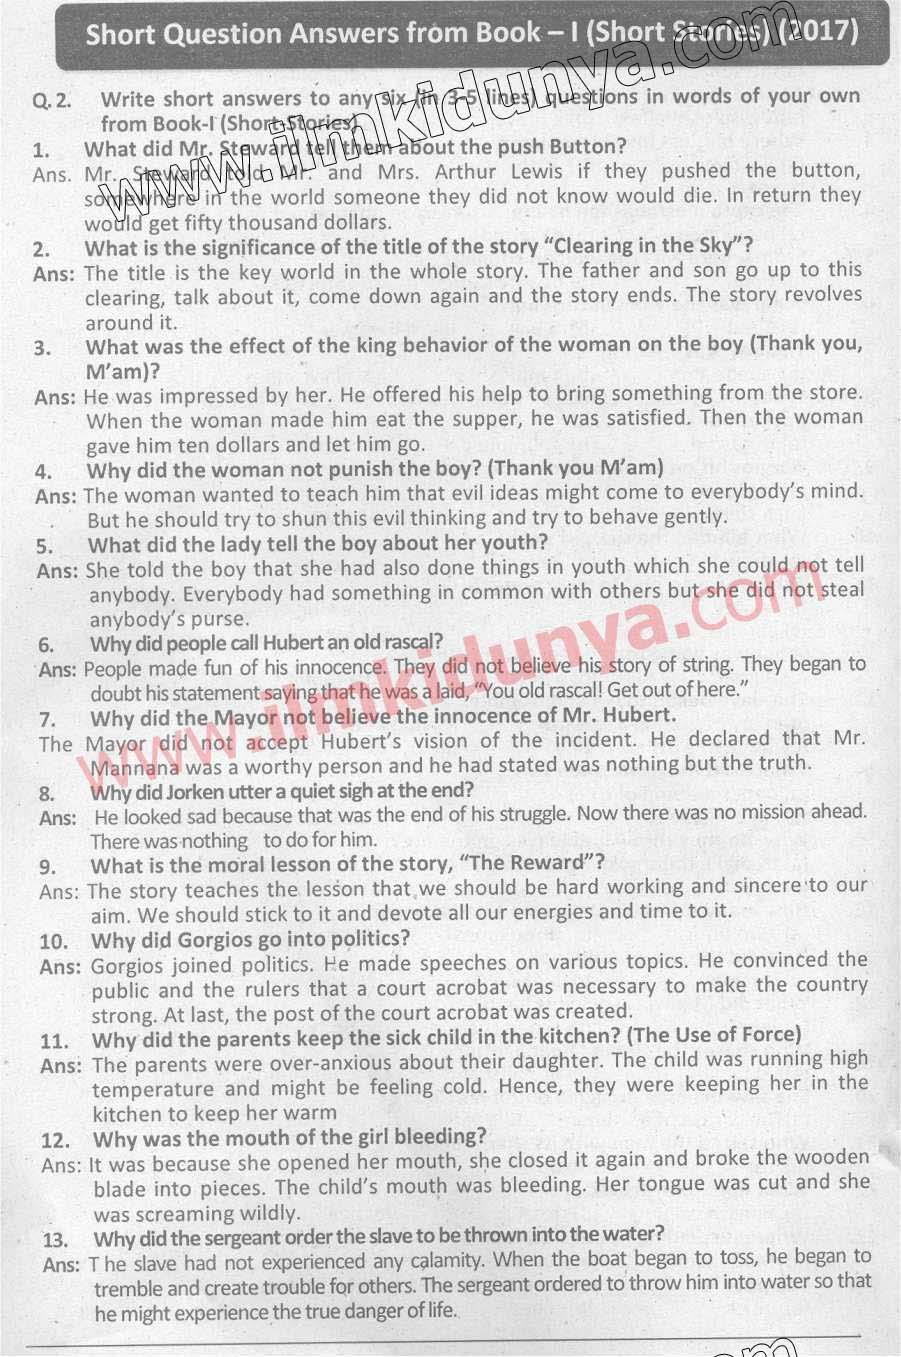 past papers of english intermediate part 2 Multan board inter part 1 english past papers inter part 1, part 2 lahore boardinter past papers english part 1, english past papers inter part 2 bise lahore.